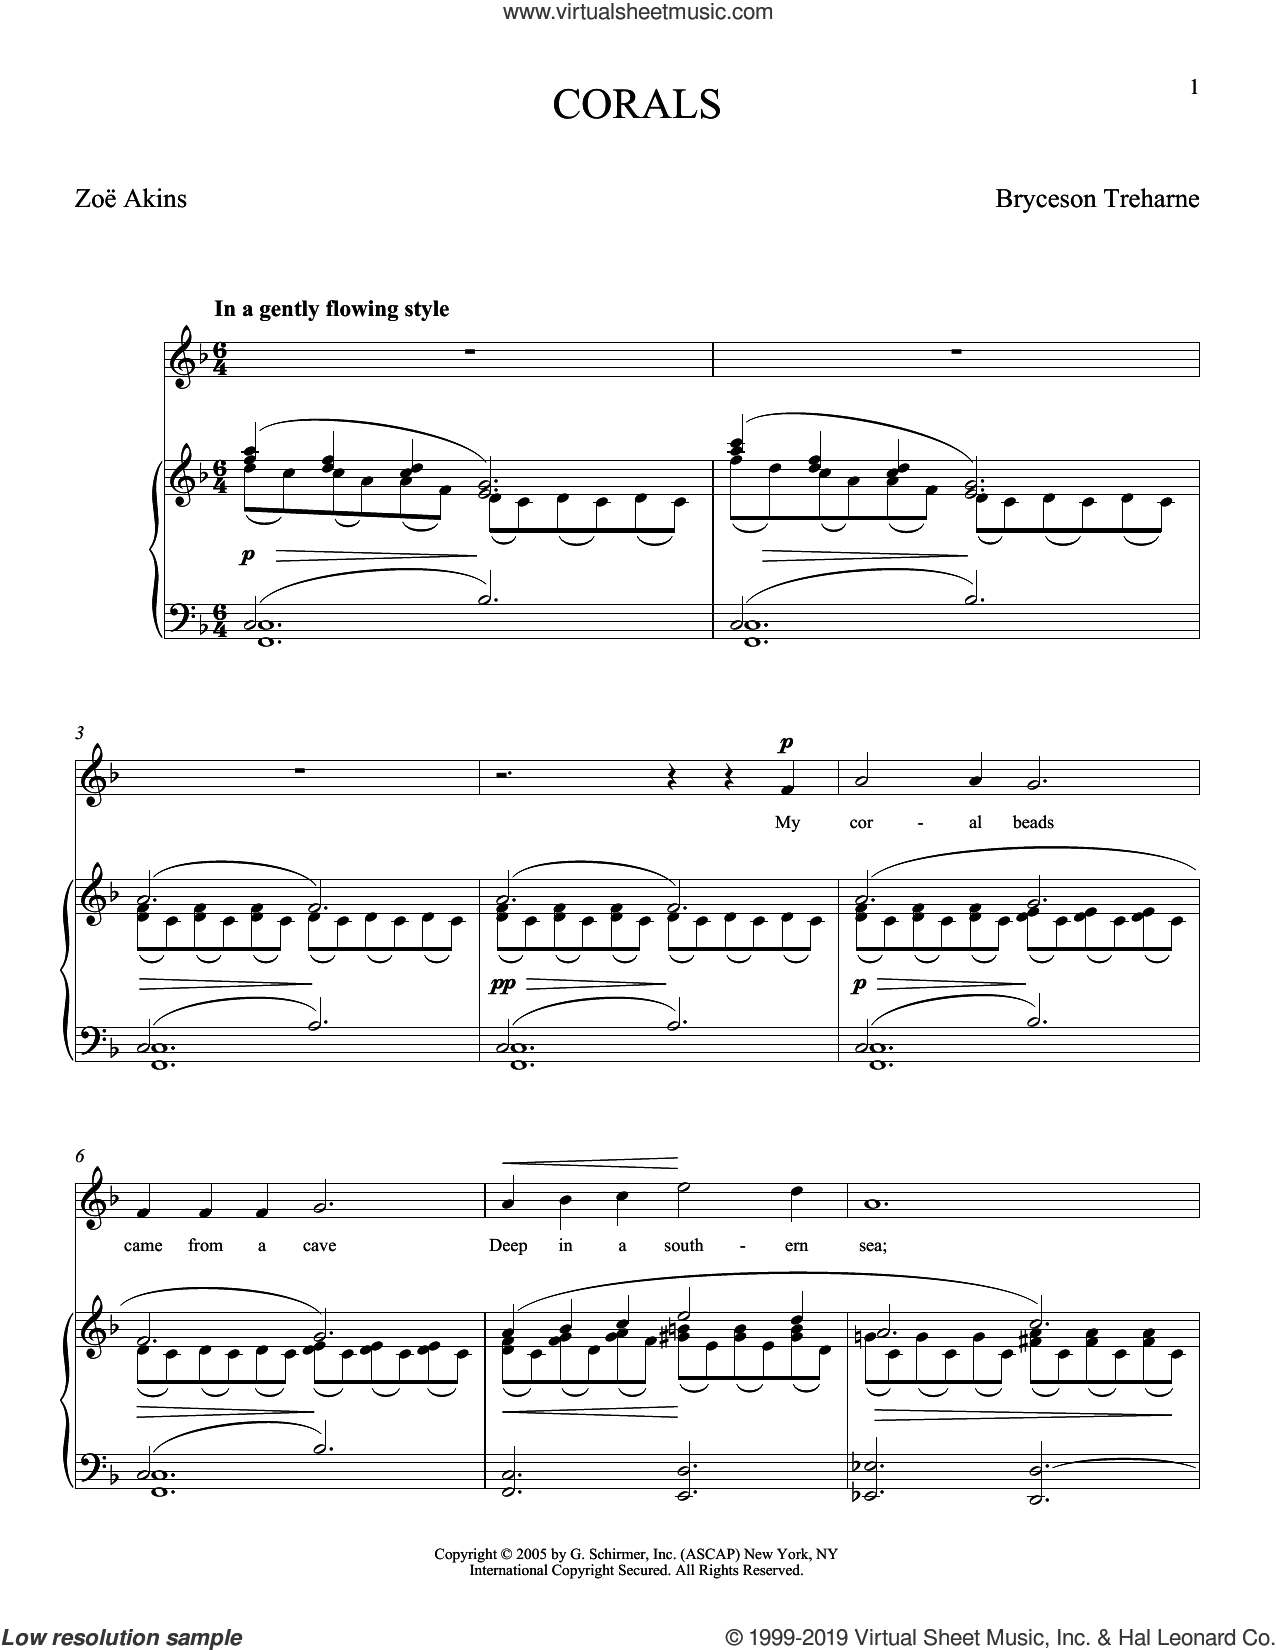 Corals sheet music for voice and piano (Soprano) by Bryceson Treharne, Joan Frey Boytim and Zoe Akins, classical score, intermediate skill level